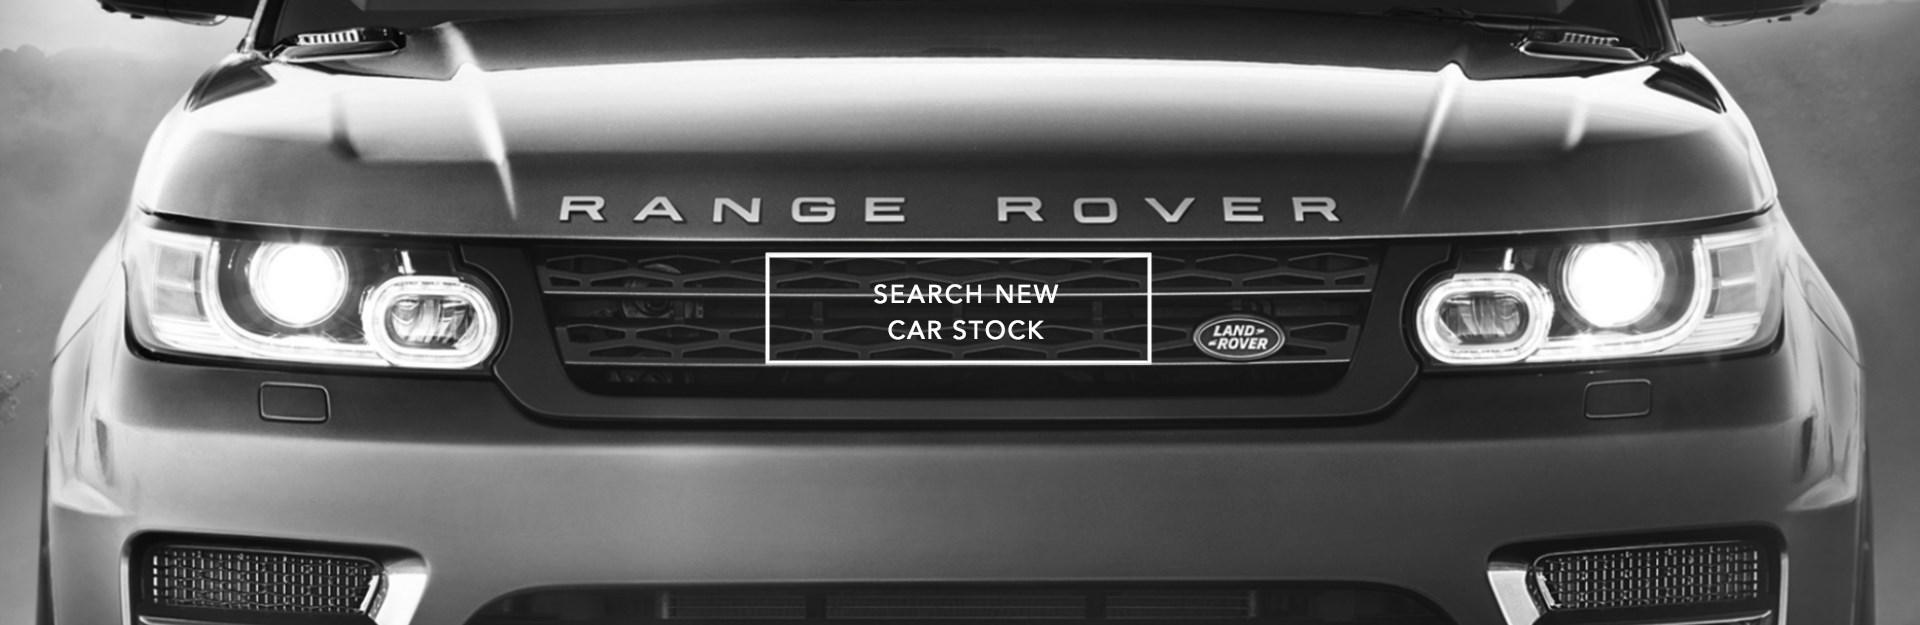 Discovery New Car Stock Banner